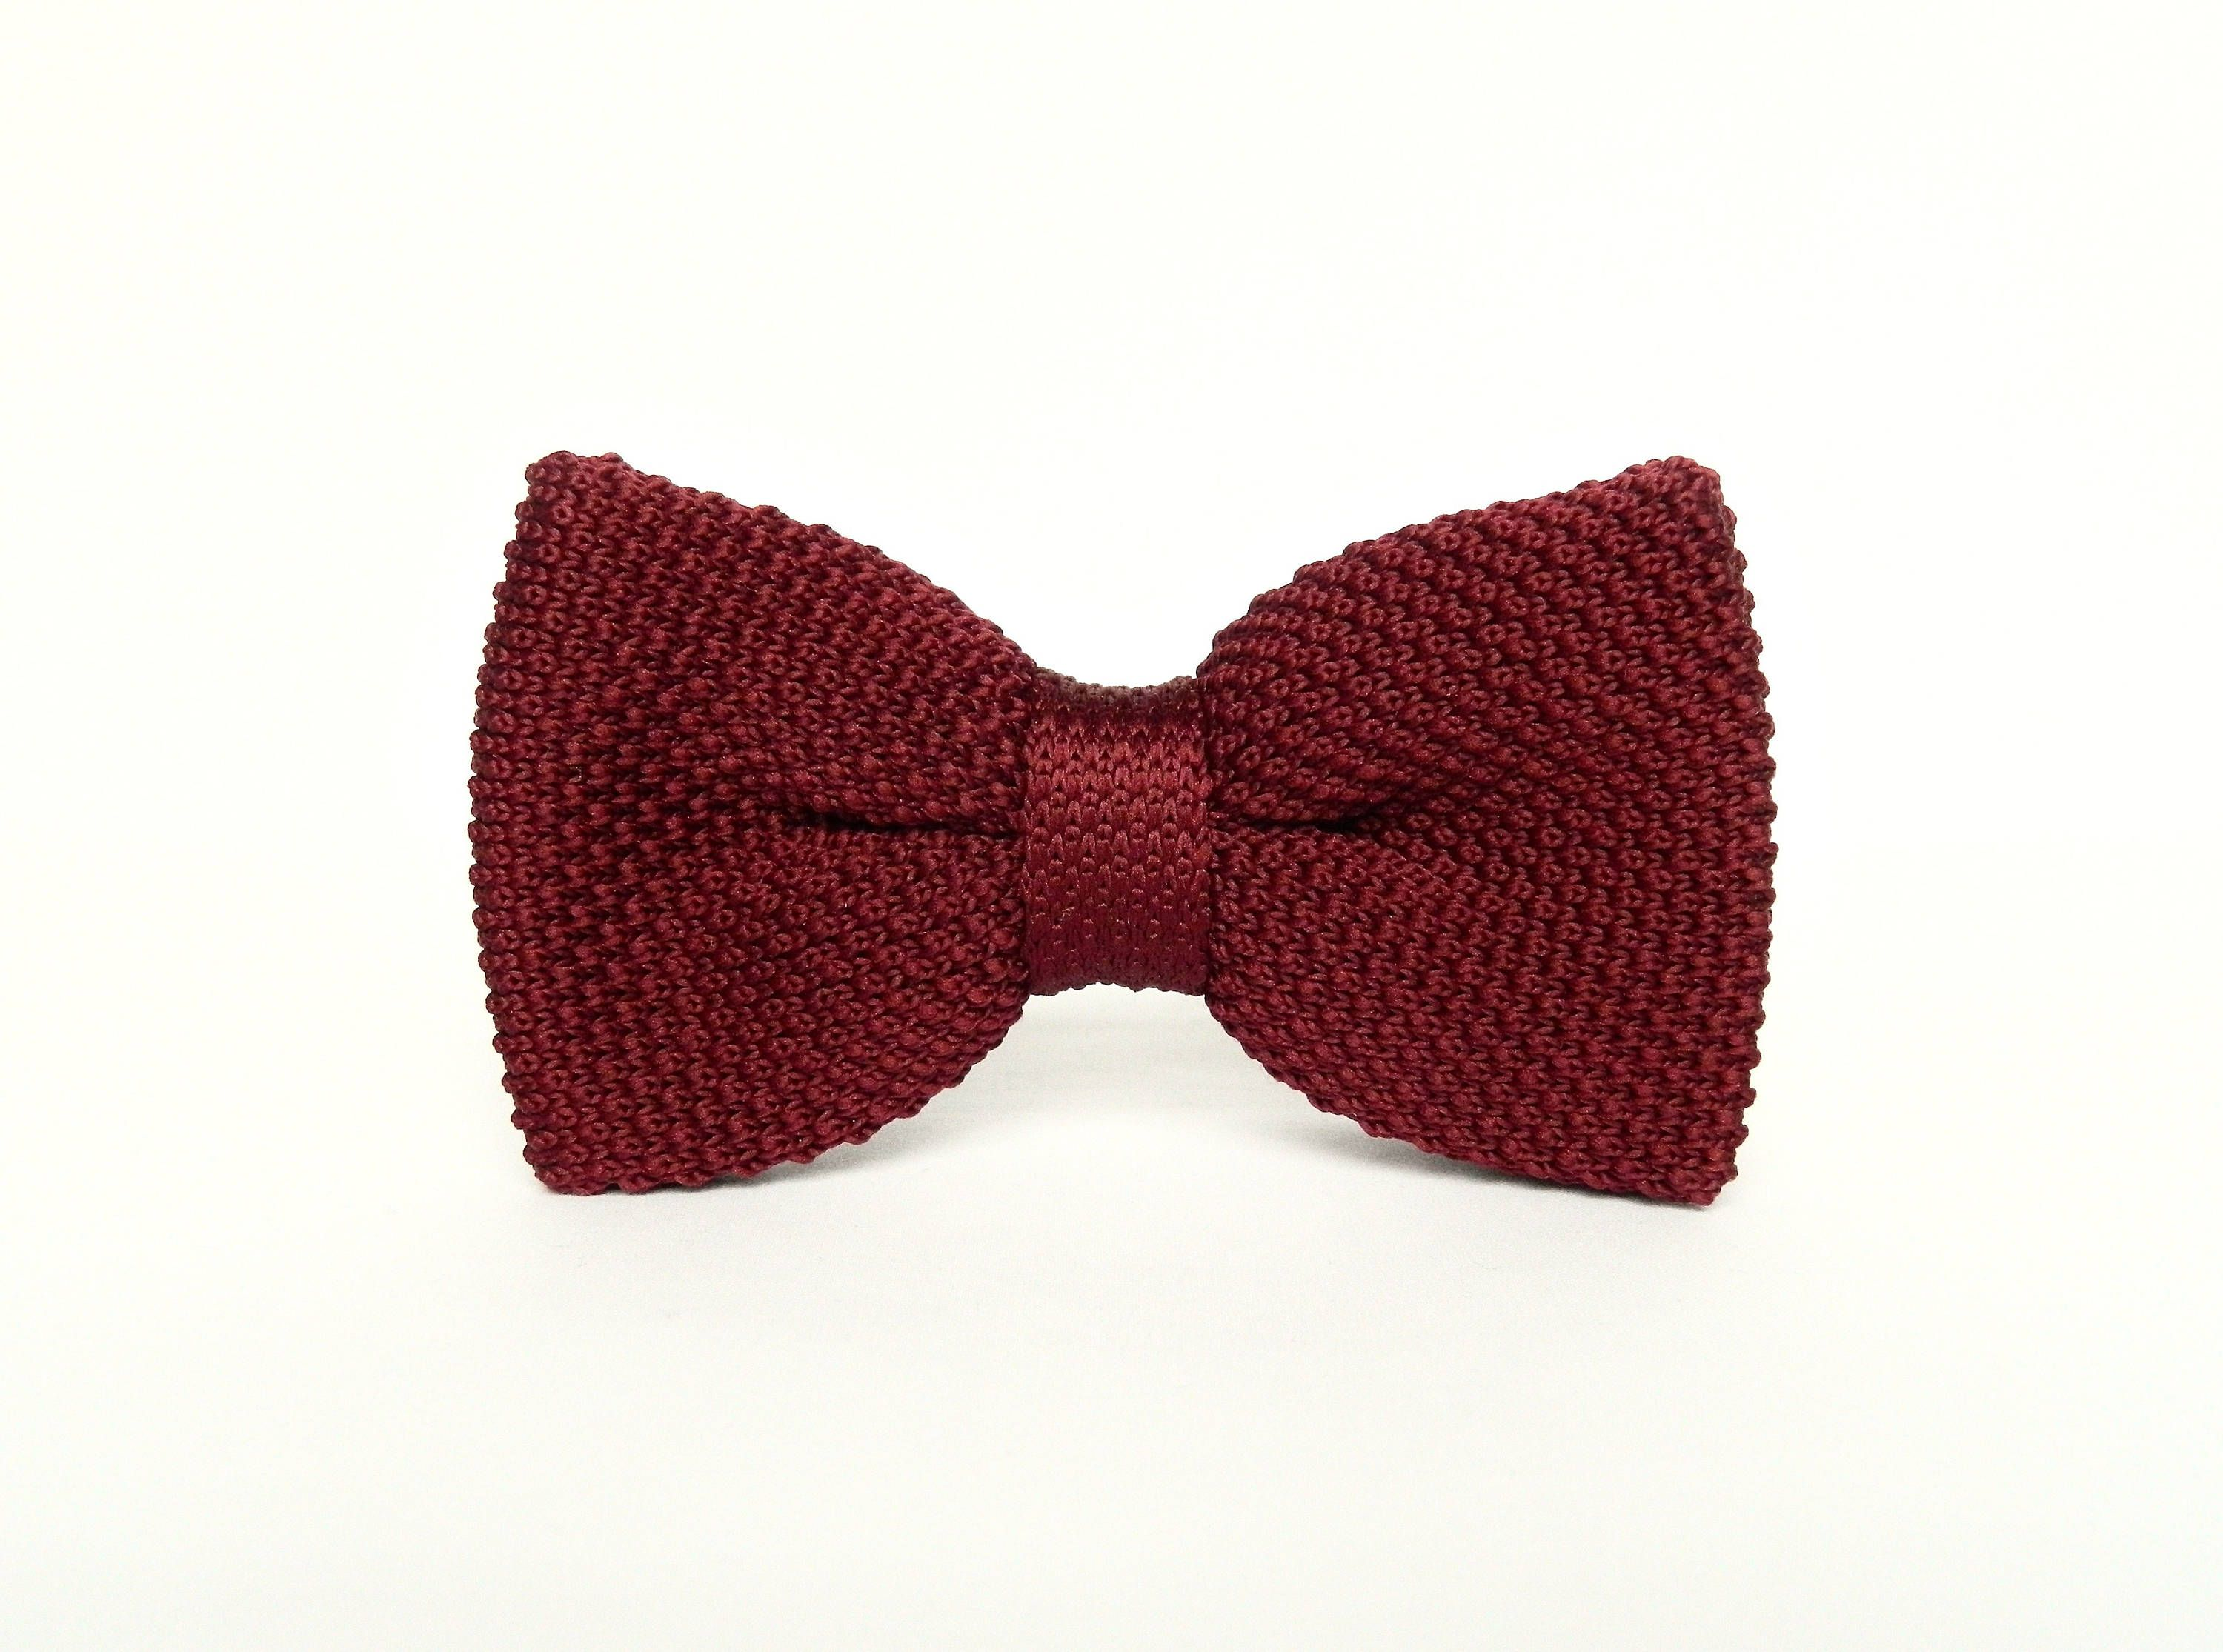 Burgundy Knitted Bow Tie Pre Tied Bow Tie Gift For Men